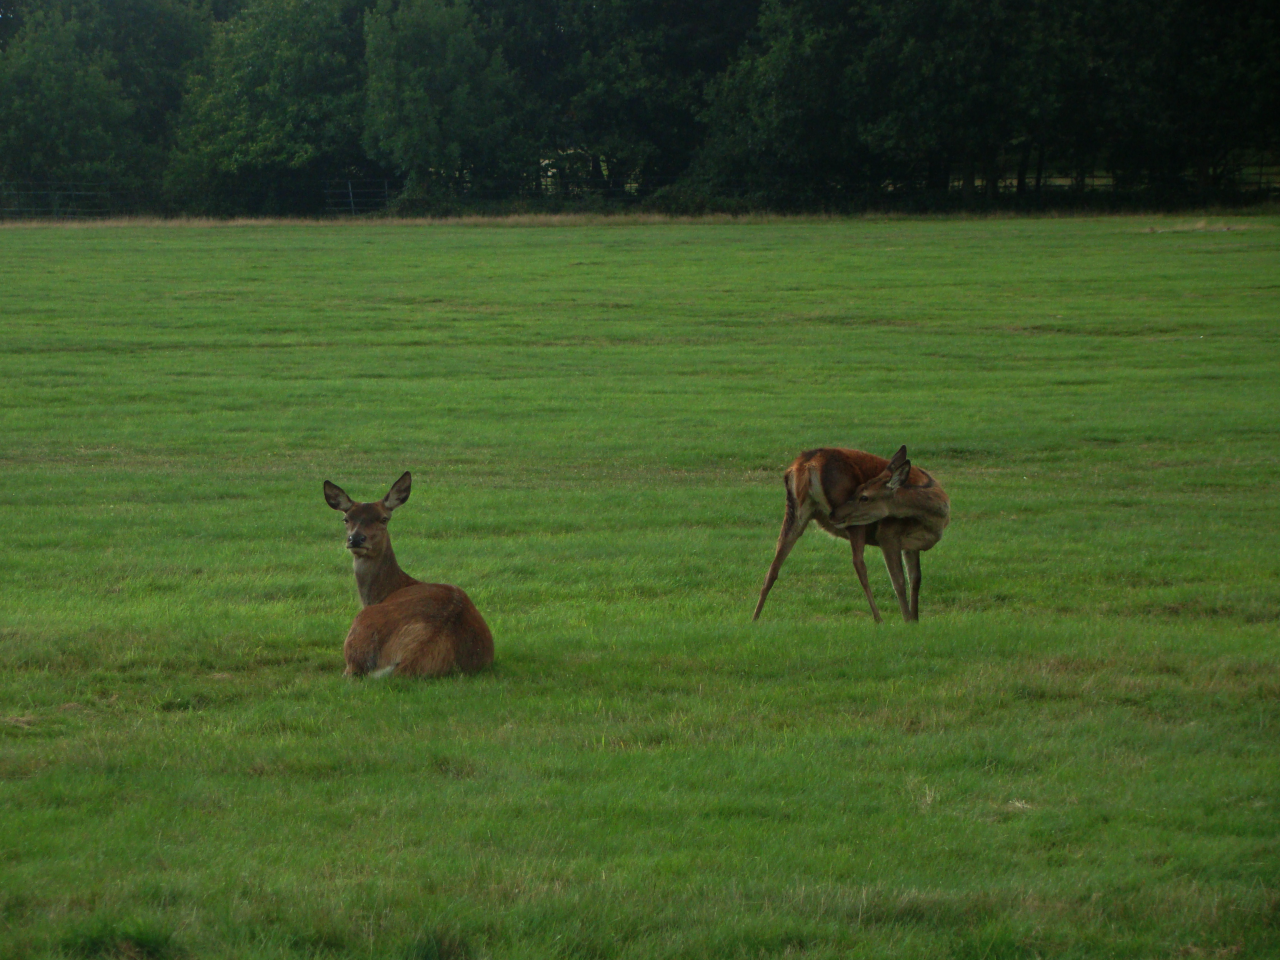 A photograph of two red deer in Richmond Park, London